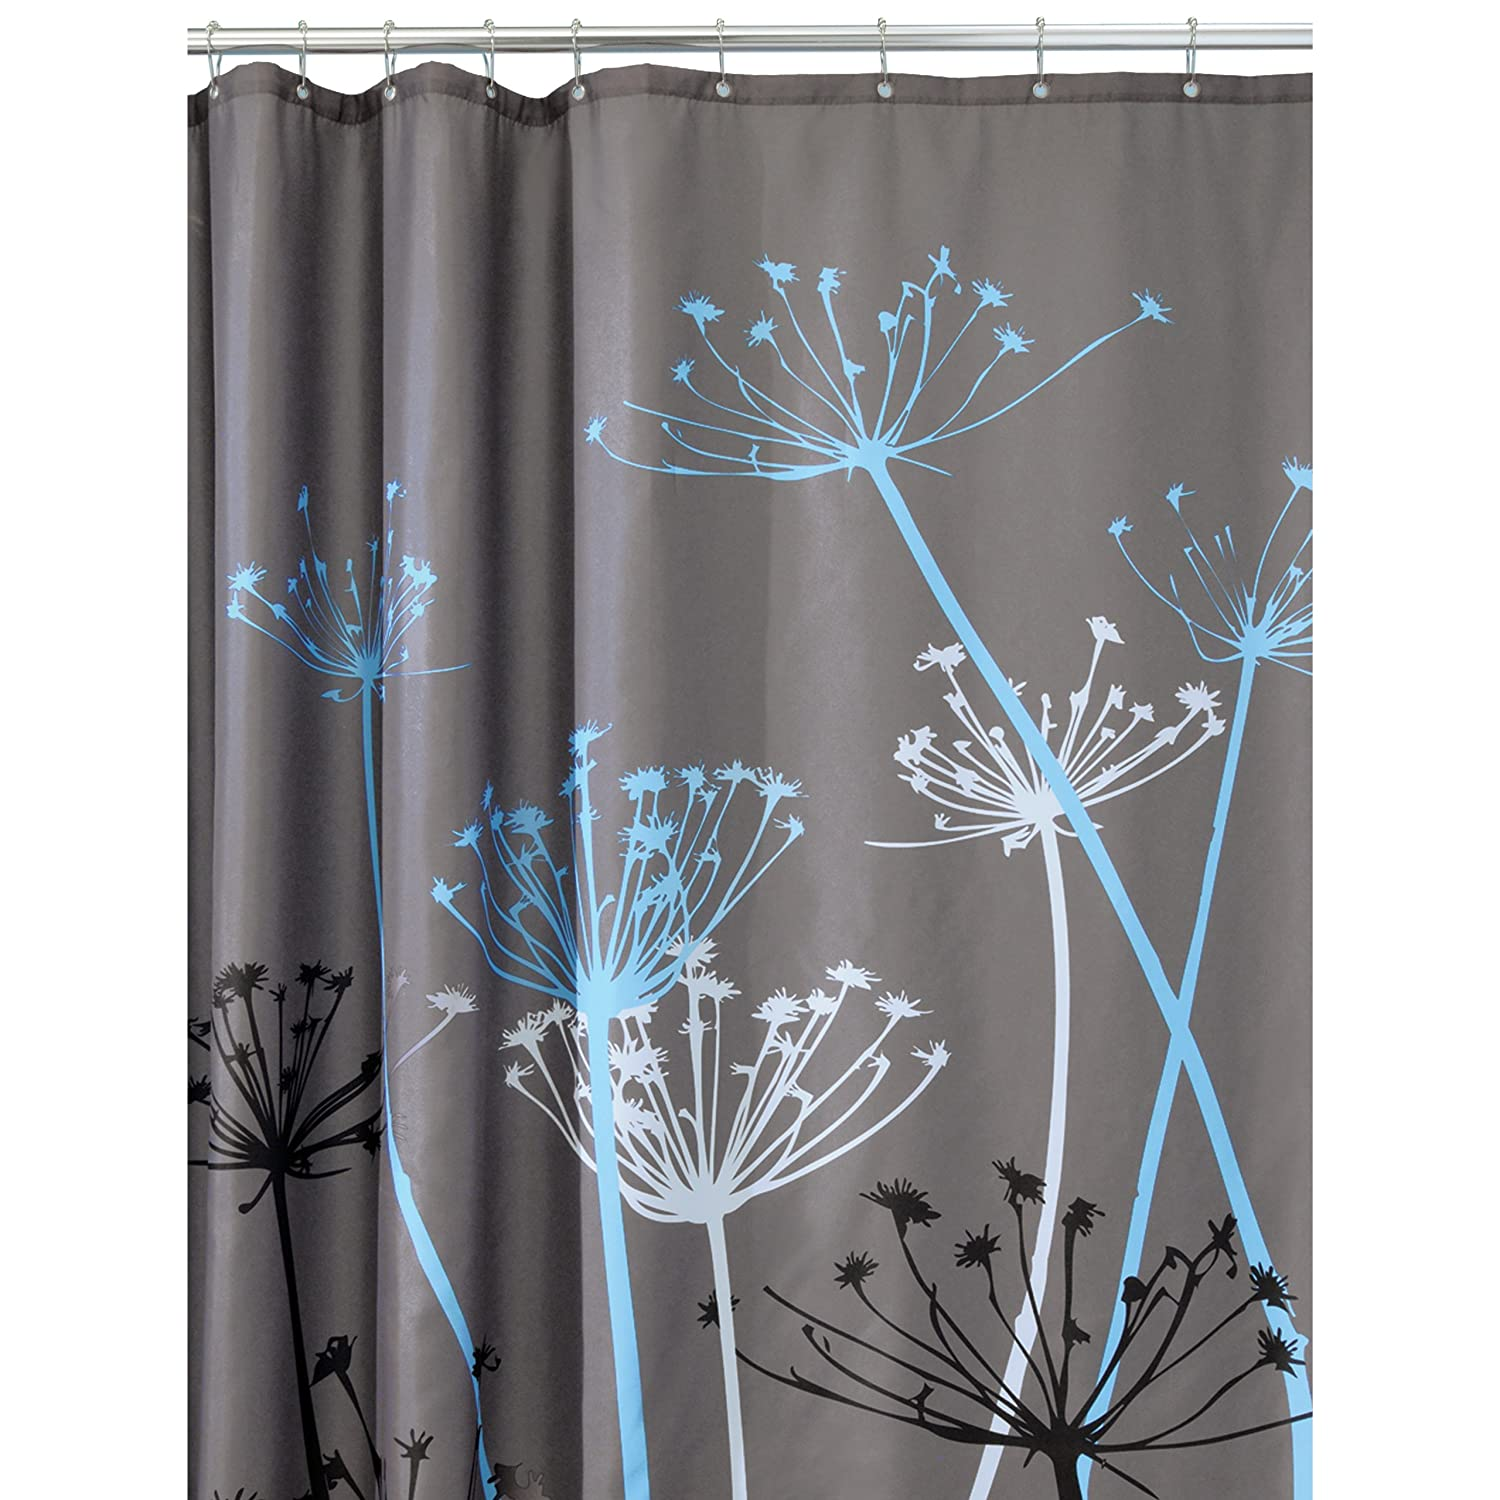 Amazon.com: Shower Curtains, Hooks & Liners: Home & Kitchen ...